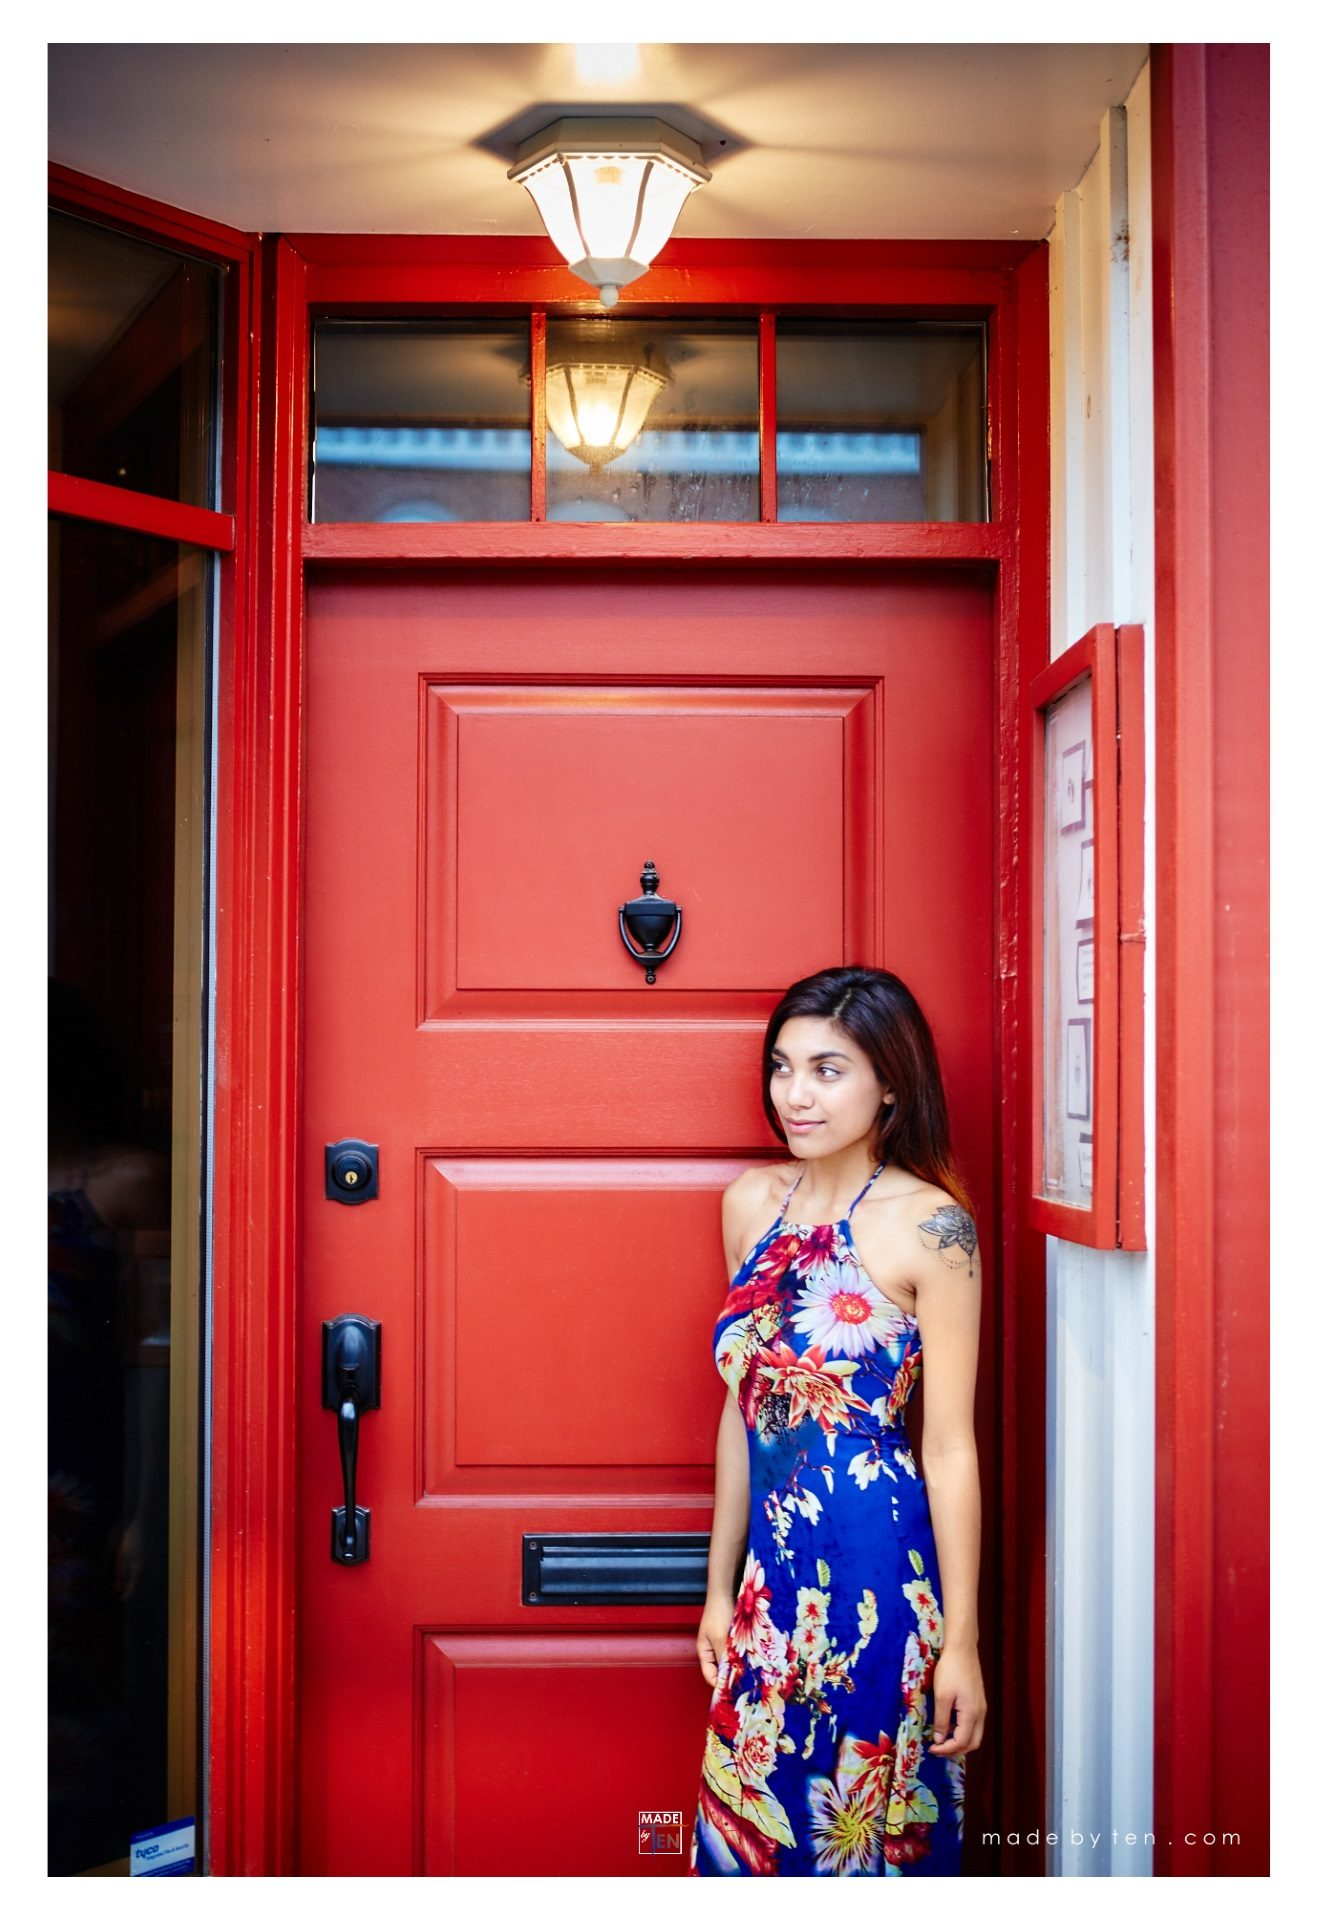 Woman Red Door Fashion Editorial - GTA Women Lifestyle Photography